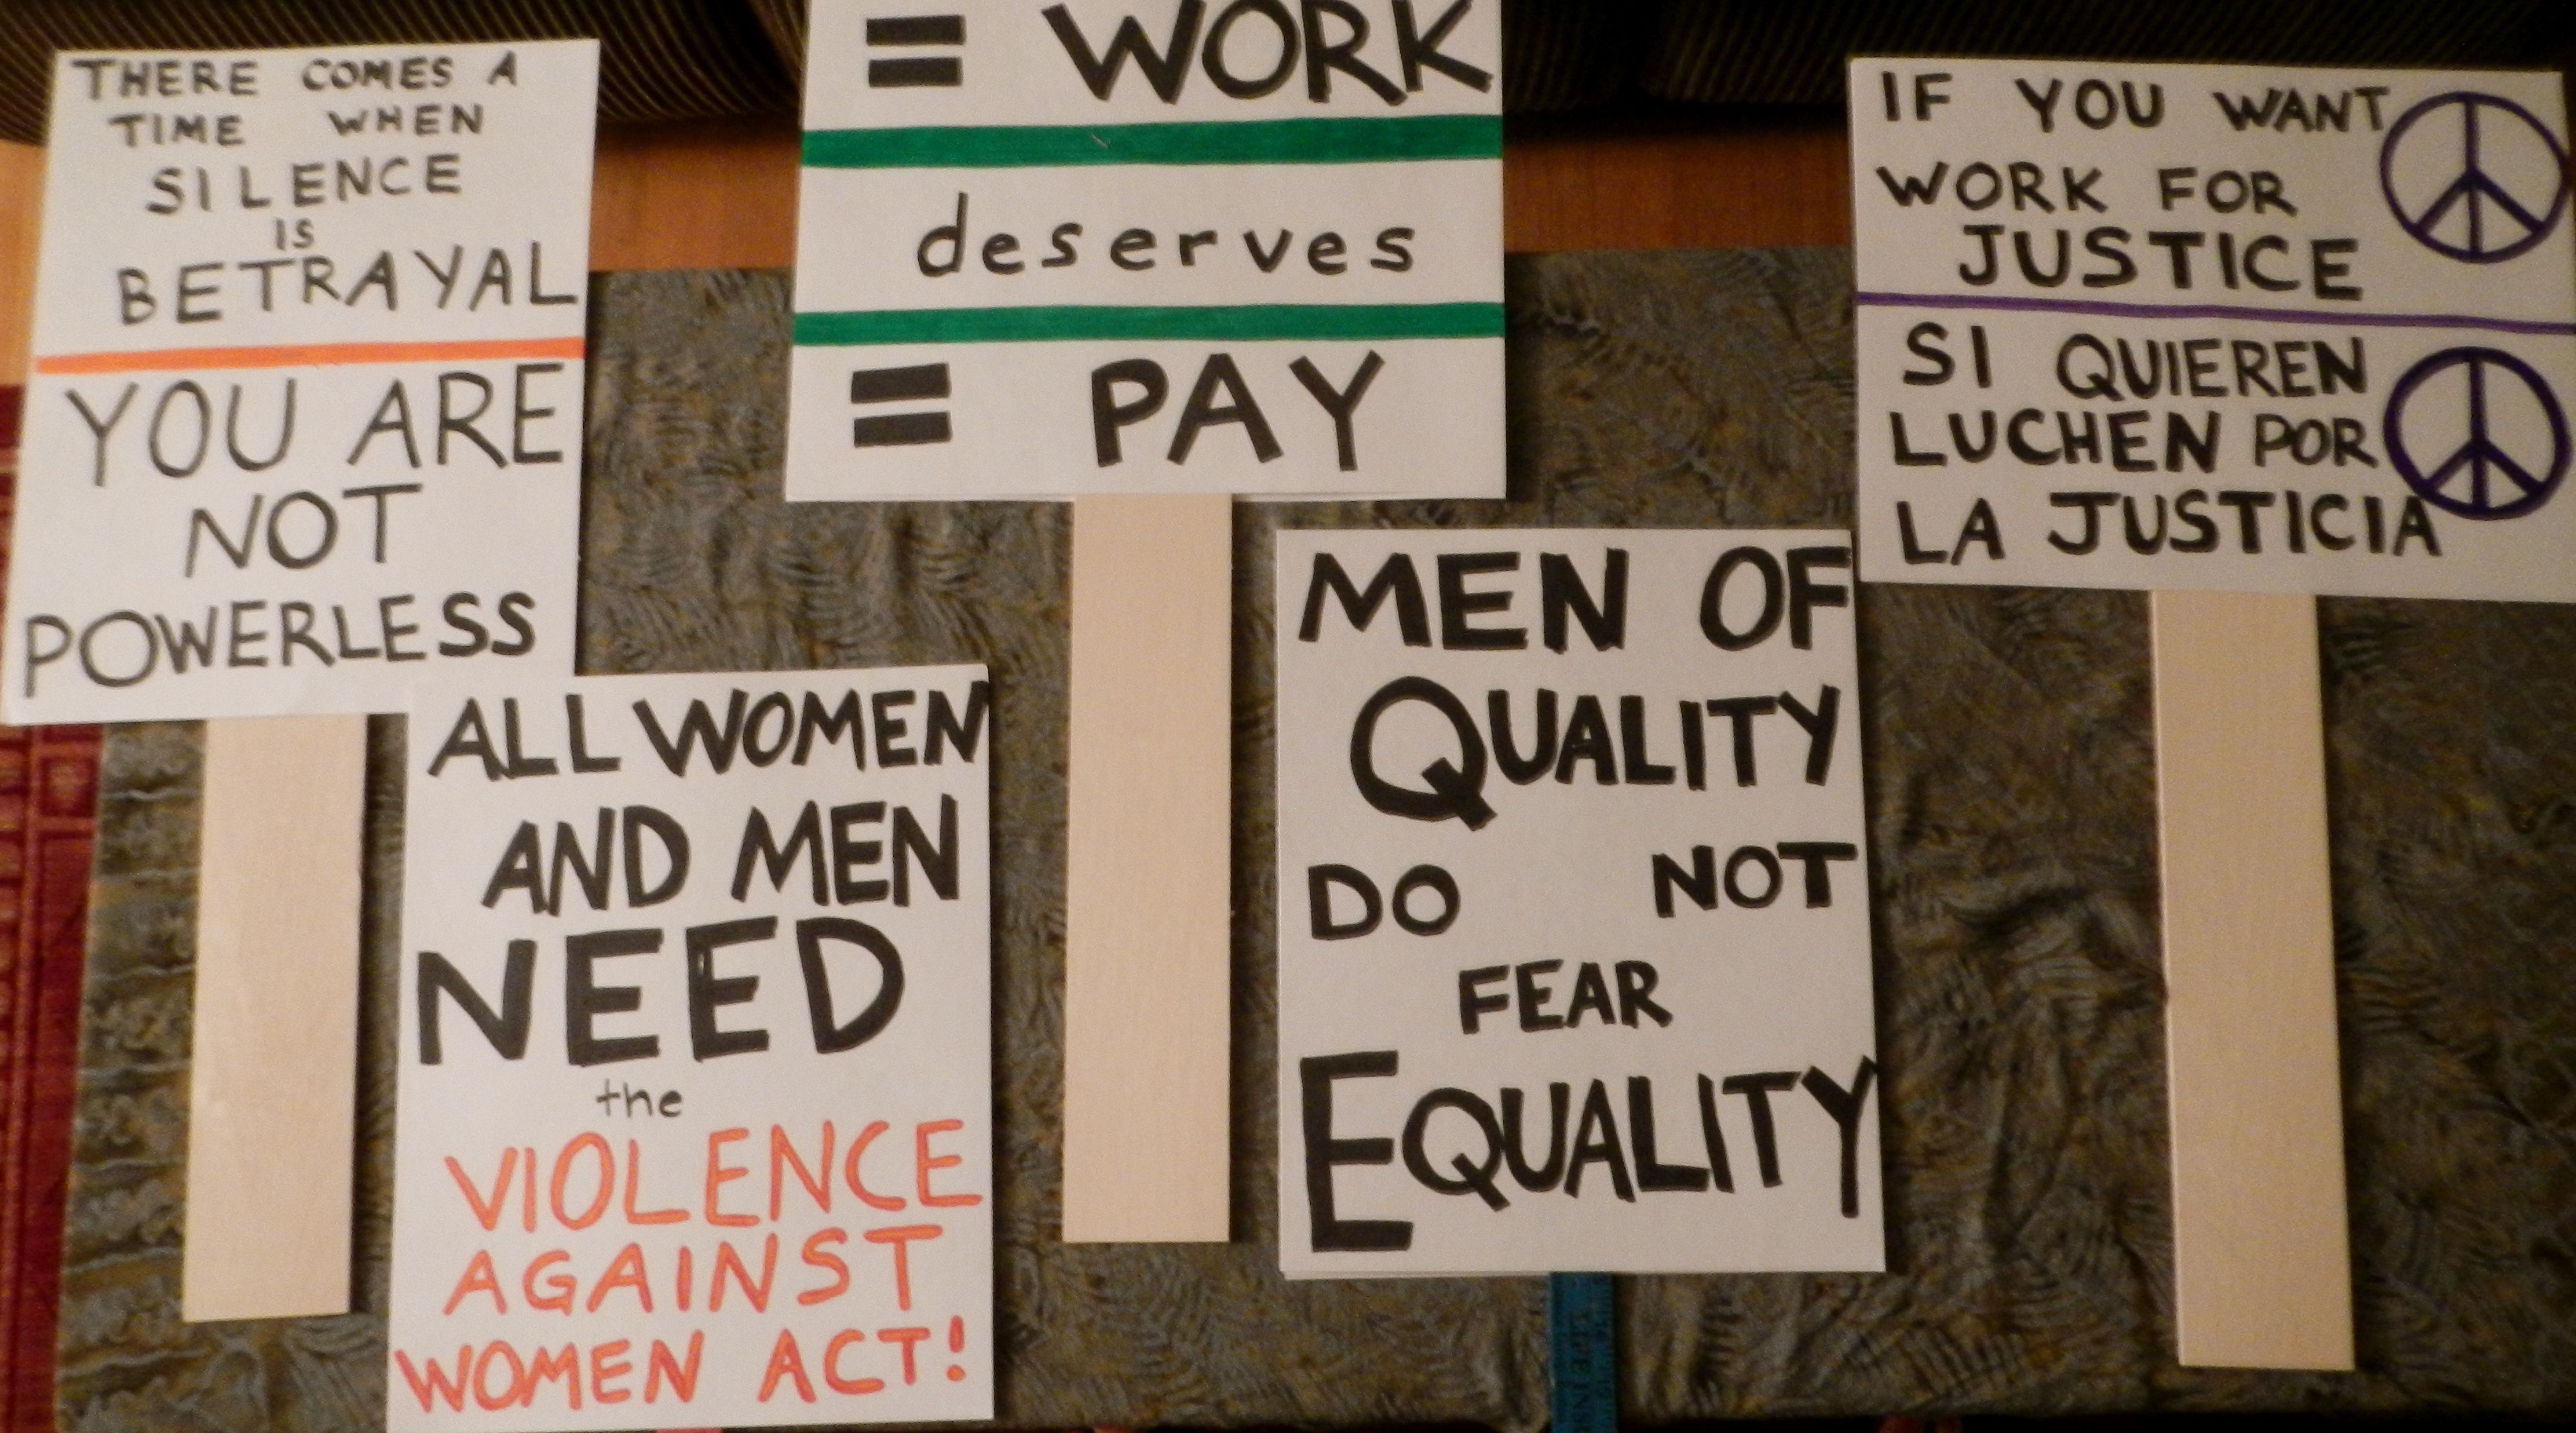 i made double sided signs for the women s rights rally in i made double sided signs for the women s rights rally in lexington ky on 8